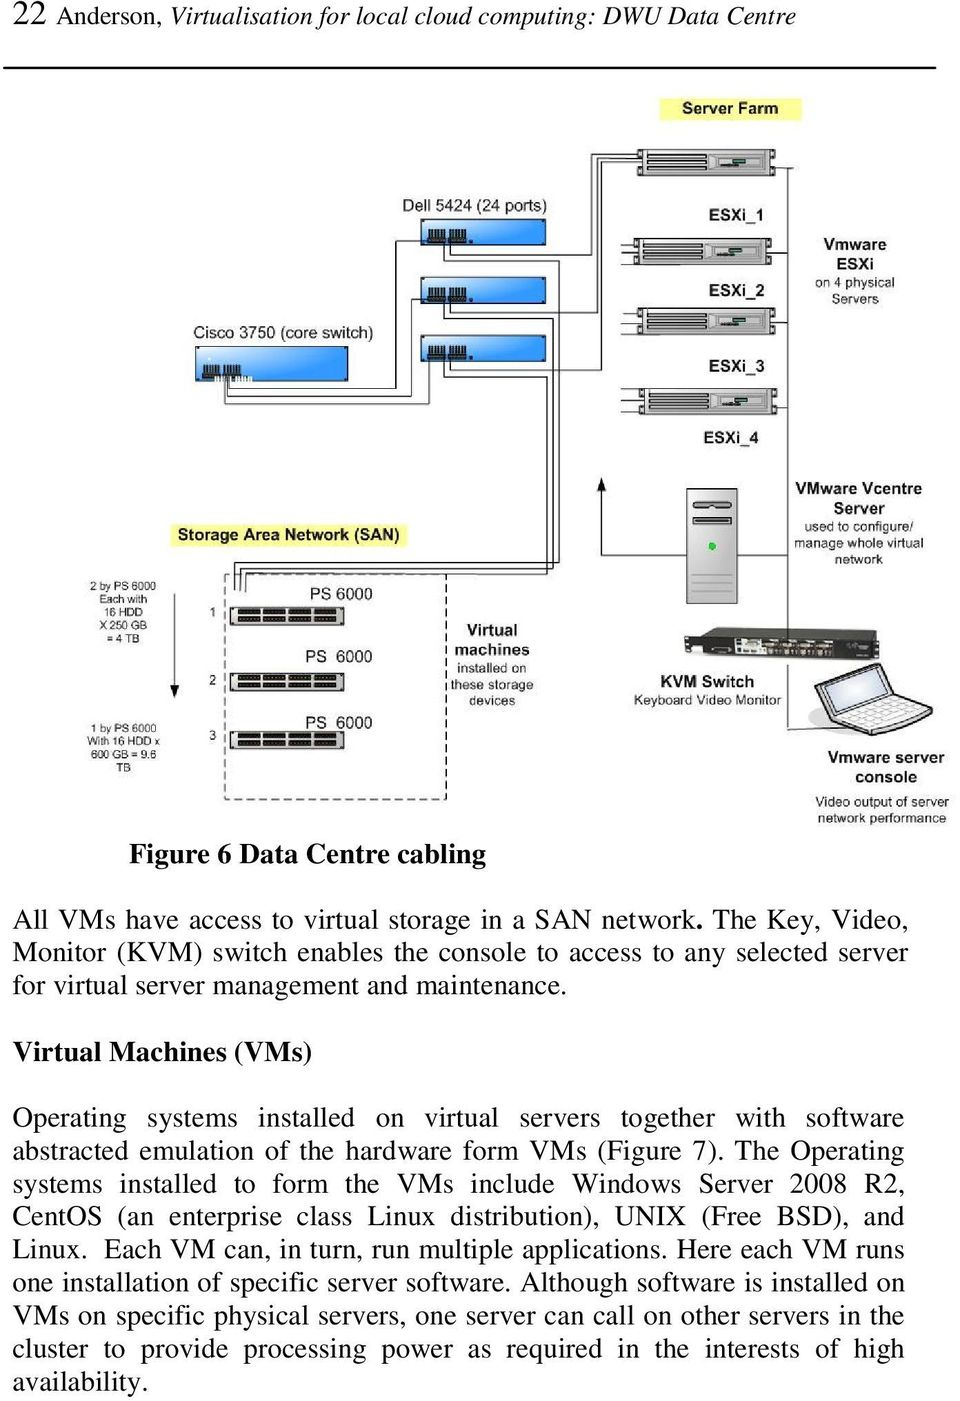 Virtual Machines (VMs) Operating systems installed on virtual servers together with software abstracted emulation of the hardware form VMs (Figure 7).